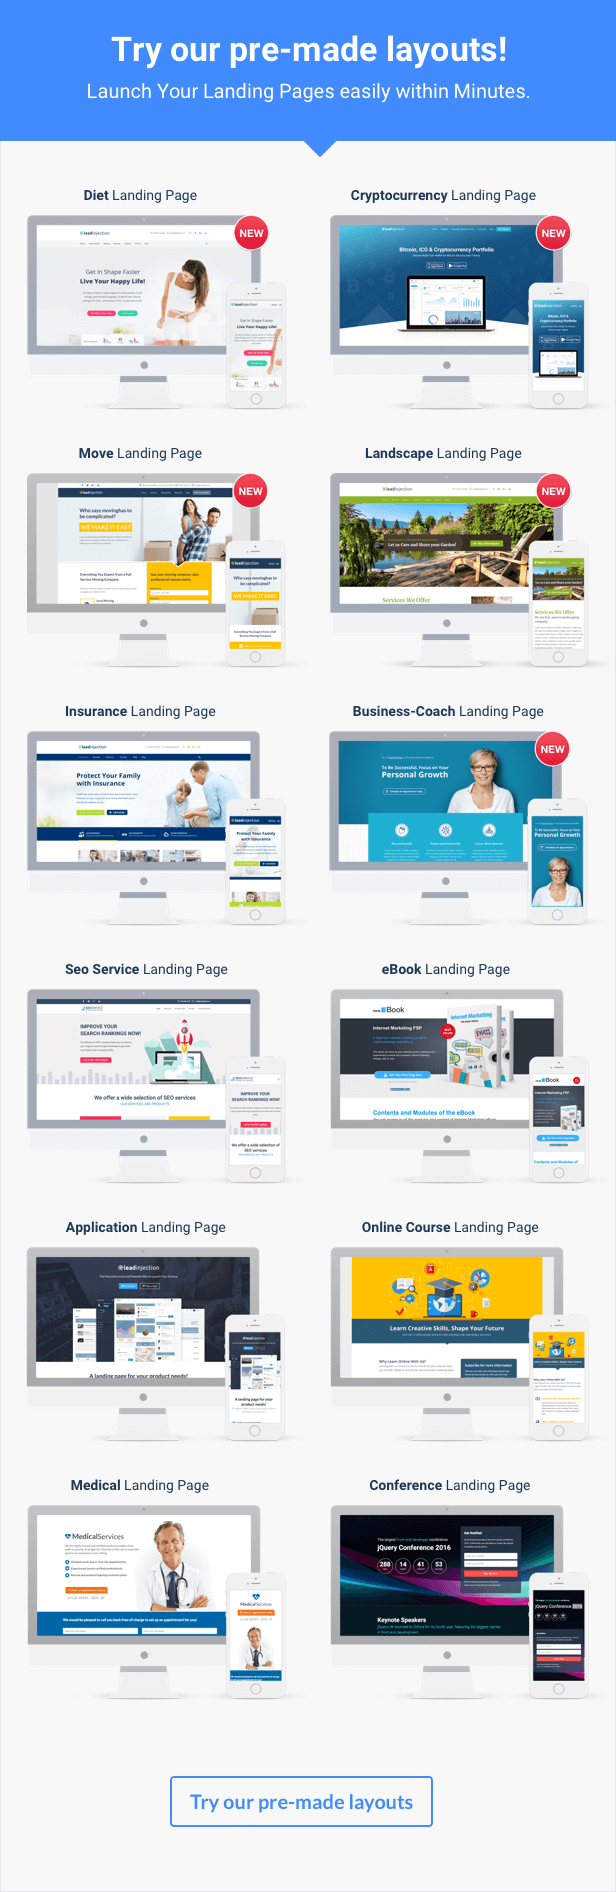 Pre made Layouts: Insurance, Seo Agency, eBook, Online Course, Application, Conference, Medical Service